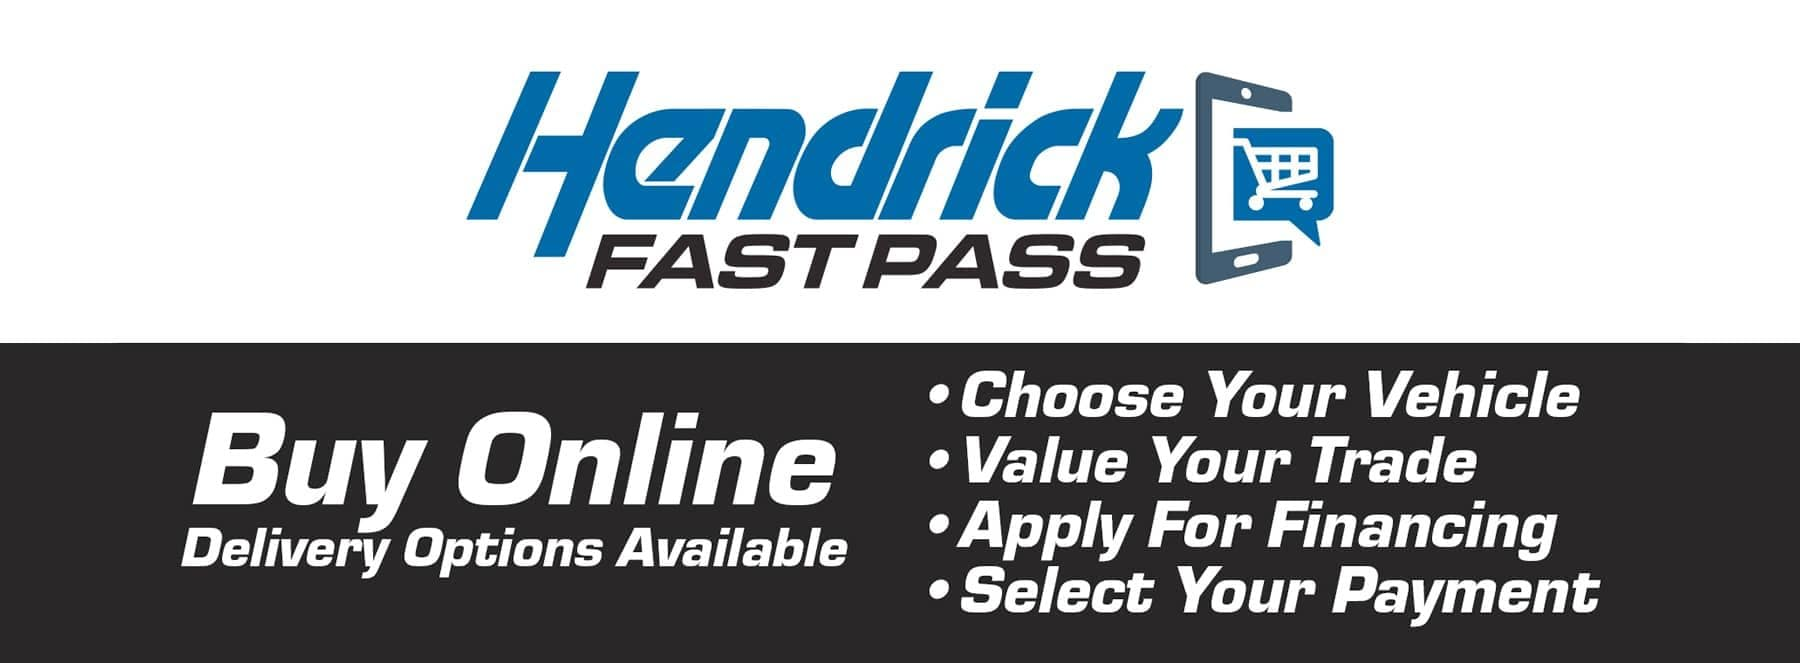 Hendricks Fast Pass - Buy Online Delivery Options Available